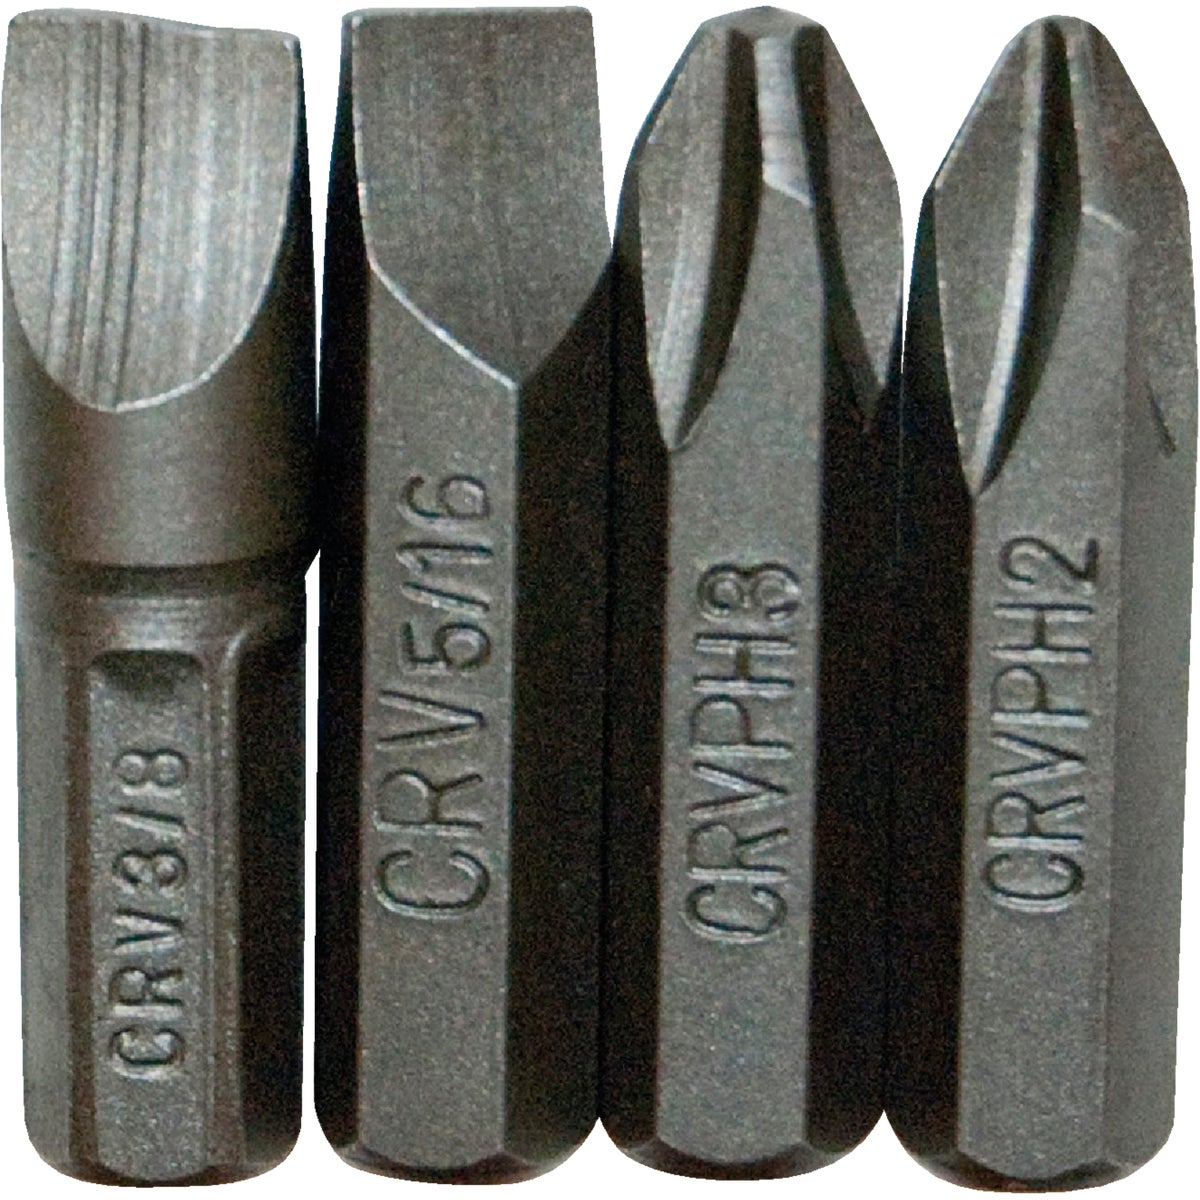 4PC IMPACT BIT SET - IMB4 by Great Neck Saw Inc